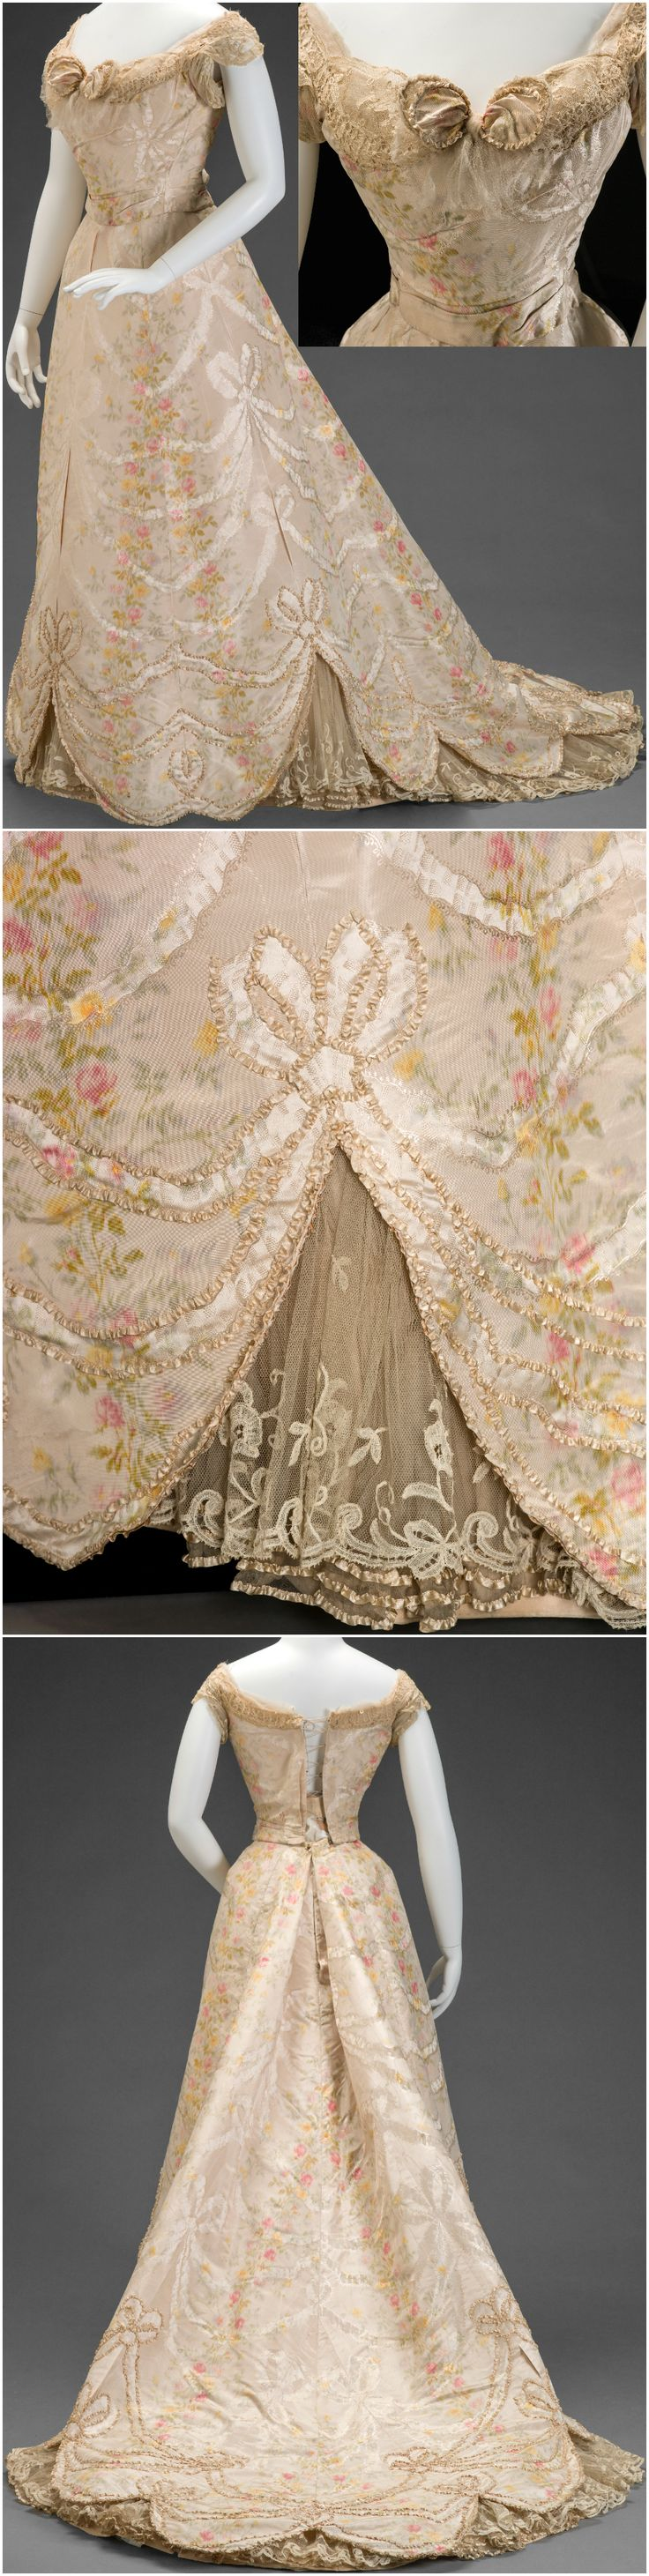 "I absolutely LOVE this gown. gown, by G. and E. Spitzer (Austrian), about 1900, at the Indianapolis Museum of Art. IMA: ""This expensive fabric was produced in Lyon, France. The elaborate surface decoration was achieved by a combination of printed warps (chiné), woven bows and swags, and then the fabric was finished with a watered silk (moiré) effect... This gown was worn by India Harris, wife of Addison C. Harris, Ambassador to Austria from 1899 to 1901."" CLICK THROUGH FOR VERY LARGE, HI-RES…"